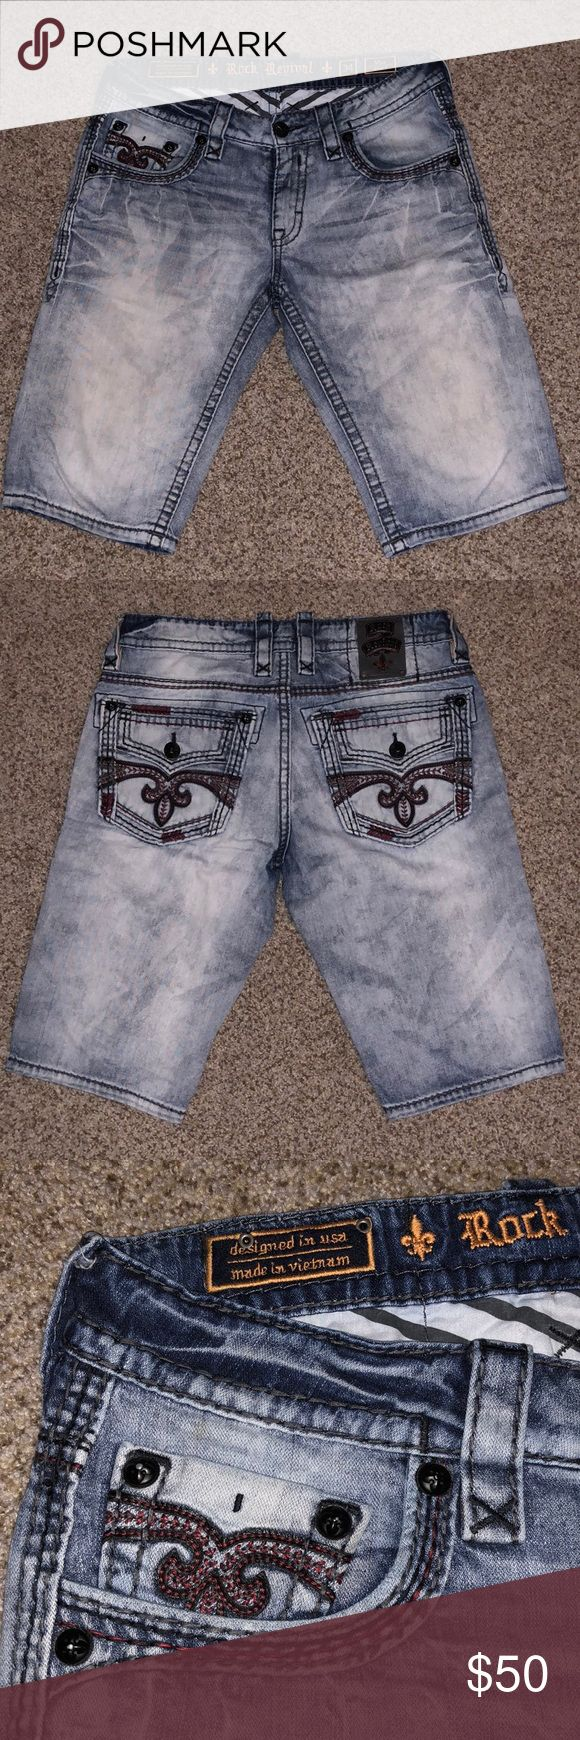 Rock Revival shorts Rock Revival shorts excellent used condition, missing one button on right side pocket. Smoke free pet free home. If you have any questions or are interested in making an offer please leave a comment. ❌NO TRADES❌ Rock Revival Shorts Jean Shorts